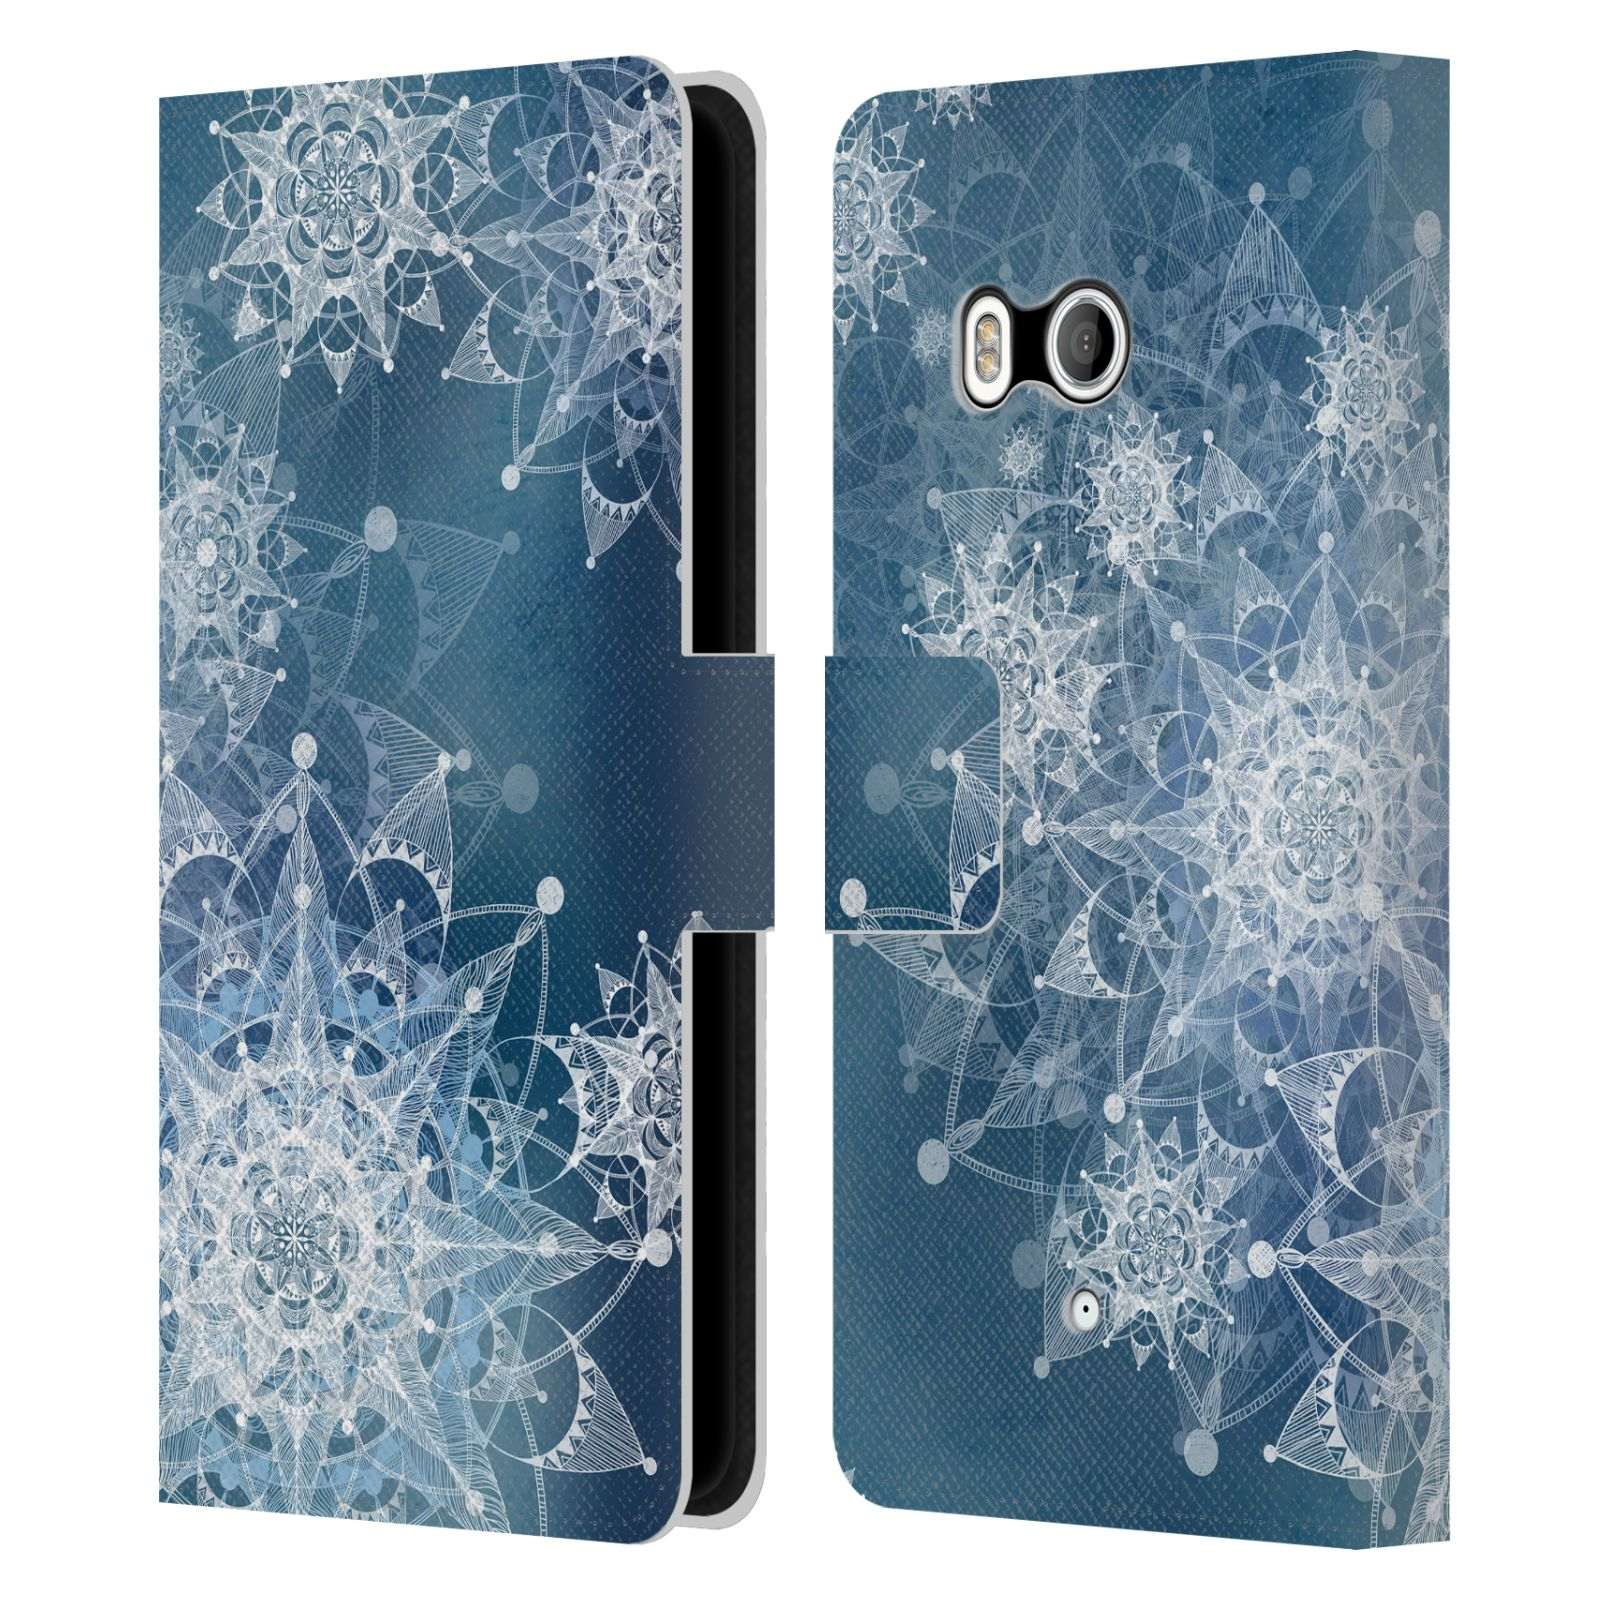 OFFICIAL-BRENDA-ERICKSON-ARTS-LEATHER-BOOK-WALLET-CASE-FOR-HTC-PHONES-1